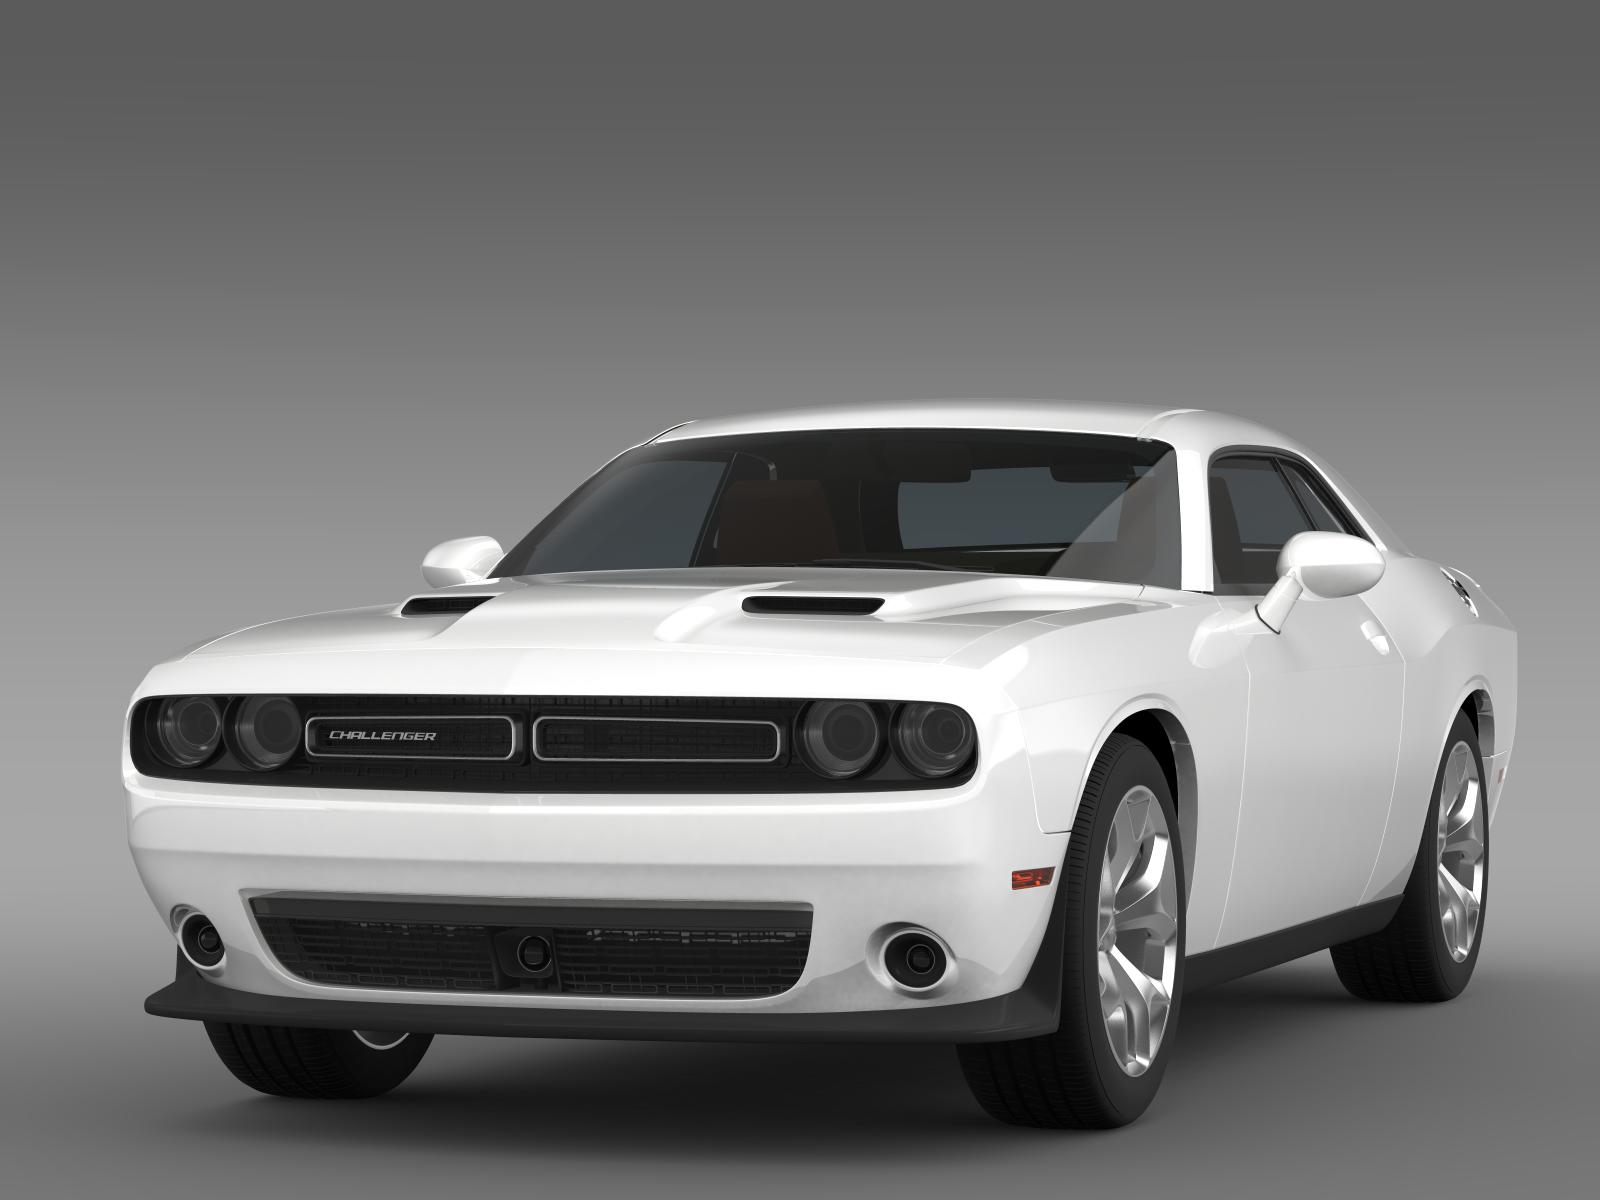 dodge challenger sxt lc 2015 3d model flatpyramid. Black Bedroom Furniture Sets. Home Design Ideas